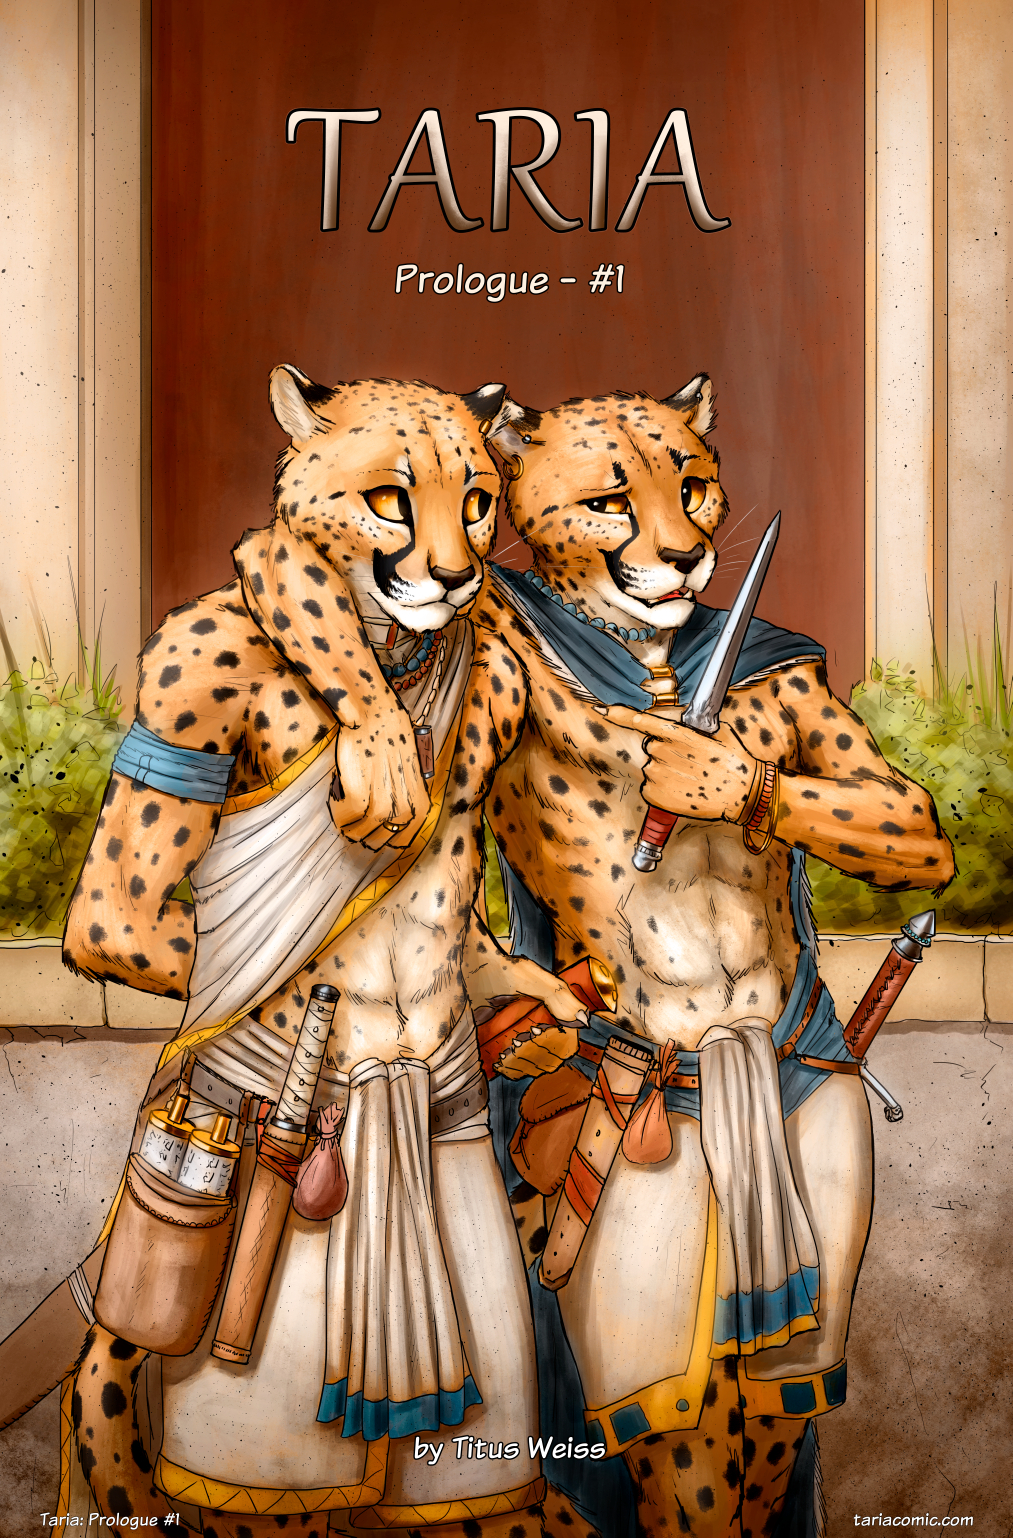 Taria_Prologue_#1 Cover sRGB.jpg